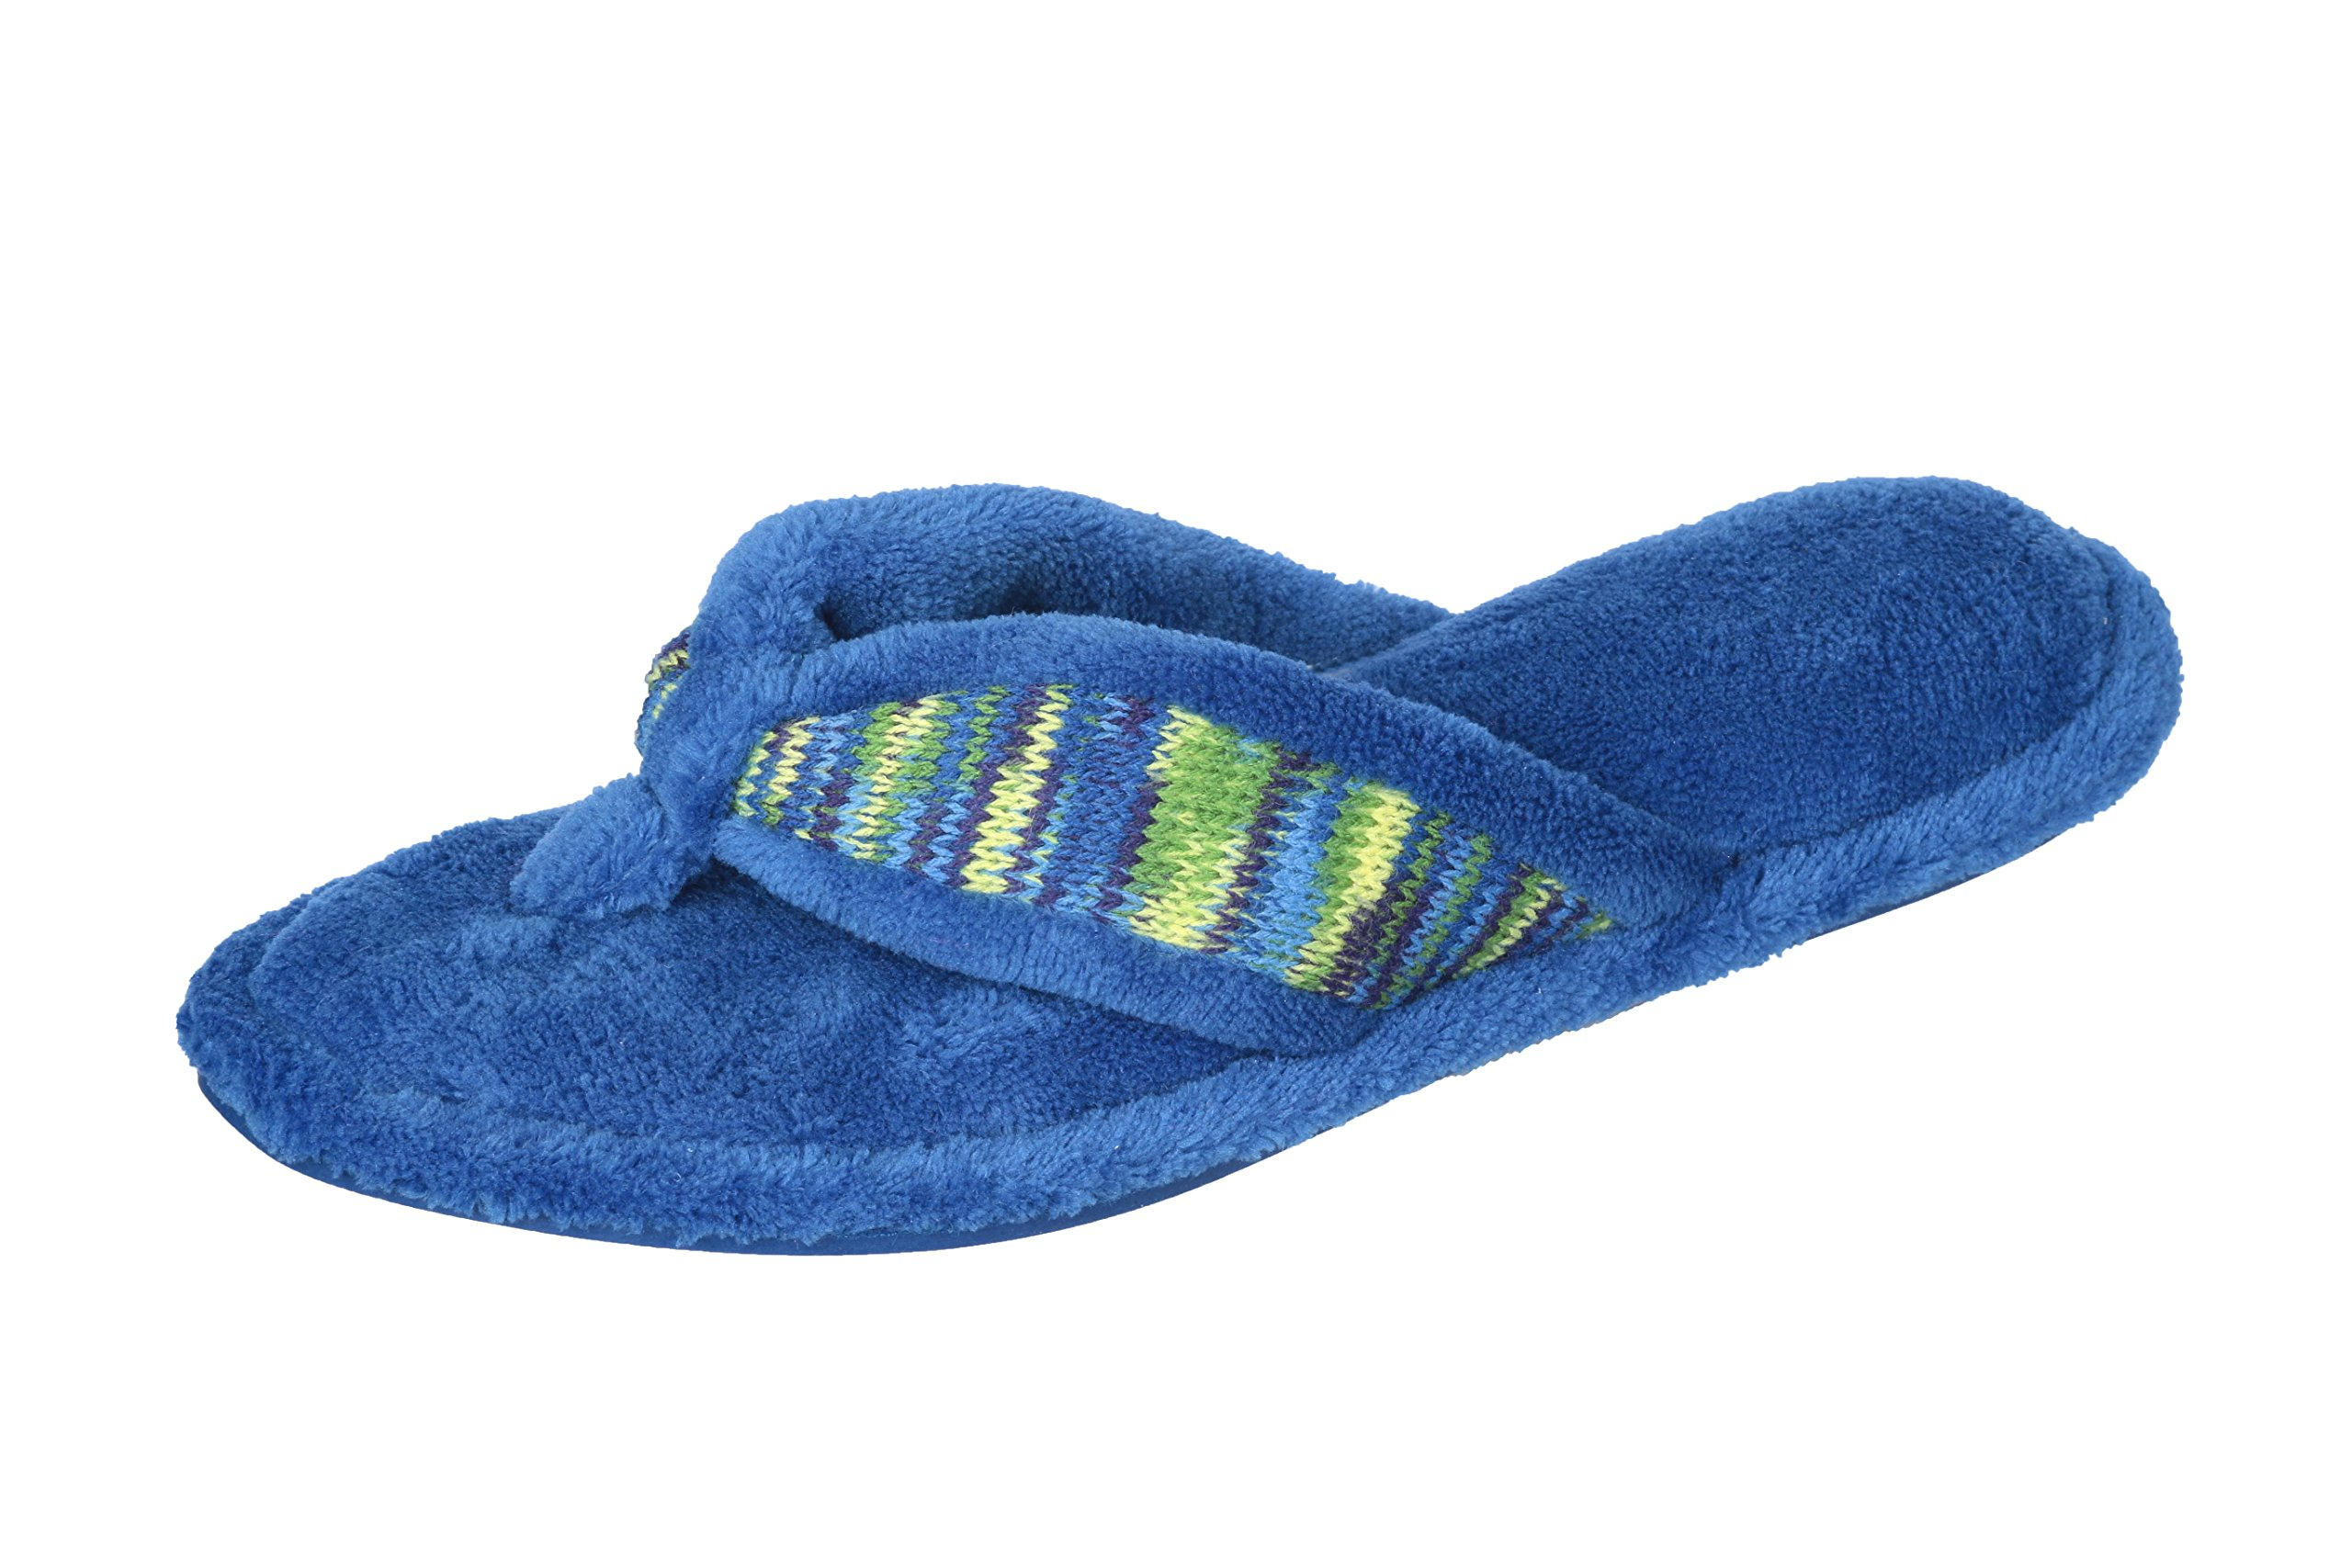 Joan Vass Woman's Spa Thong Flipflop Slippers in Fun Chic Embroidered Colors (Medium, Blue)